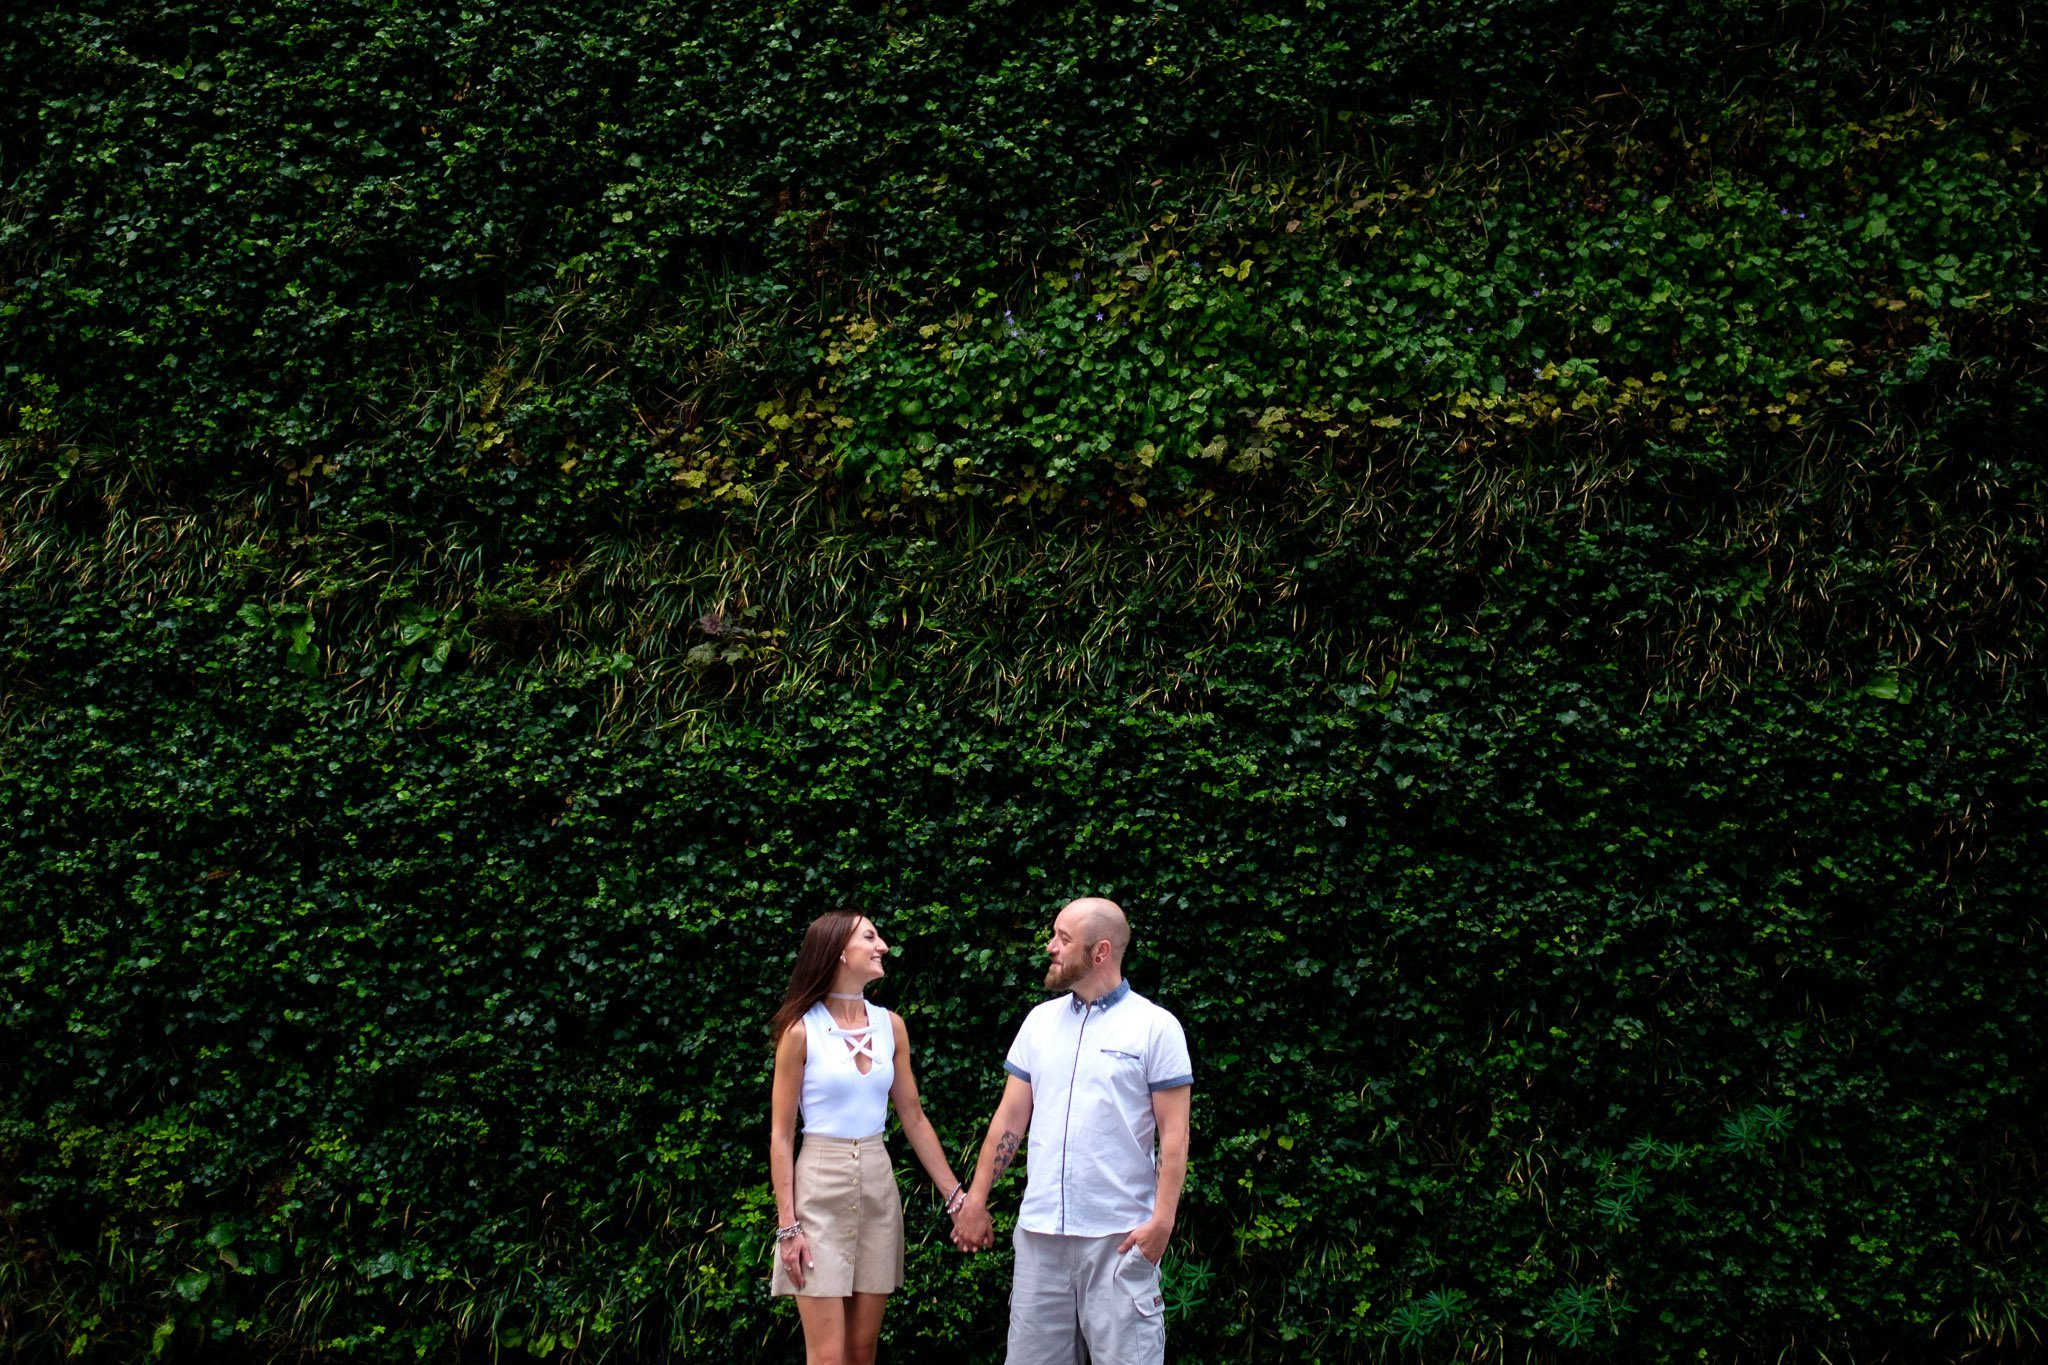 Engagement portrait of couple holding hands in front of wall of grass